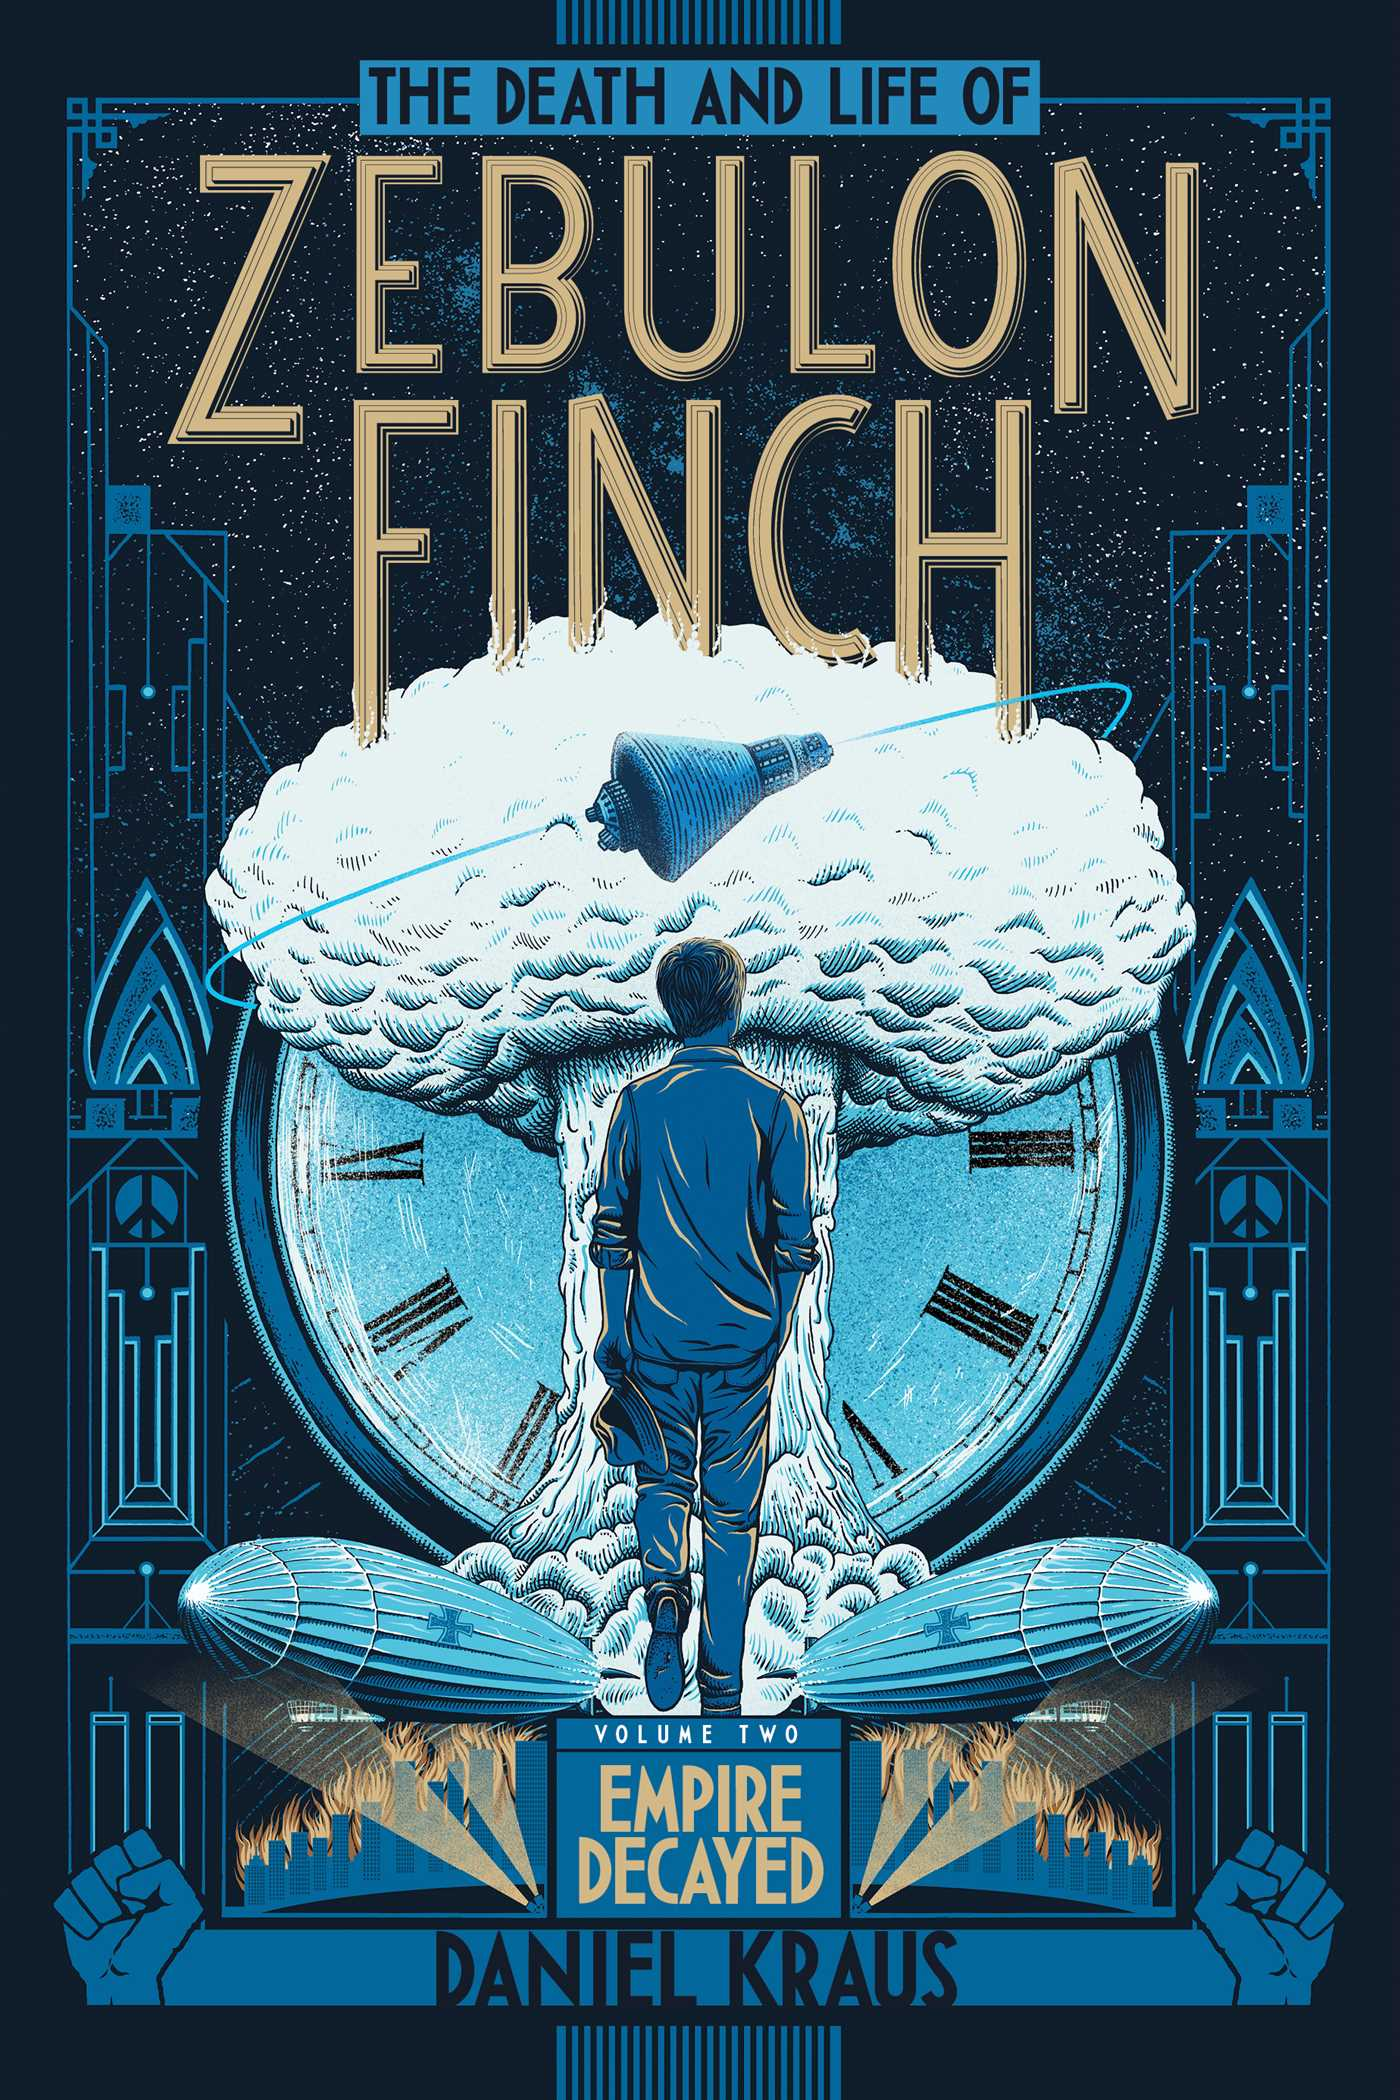 The death and life of zebulon finch volume two 9781481411424 hr